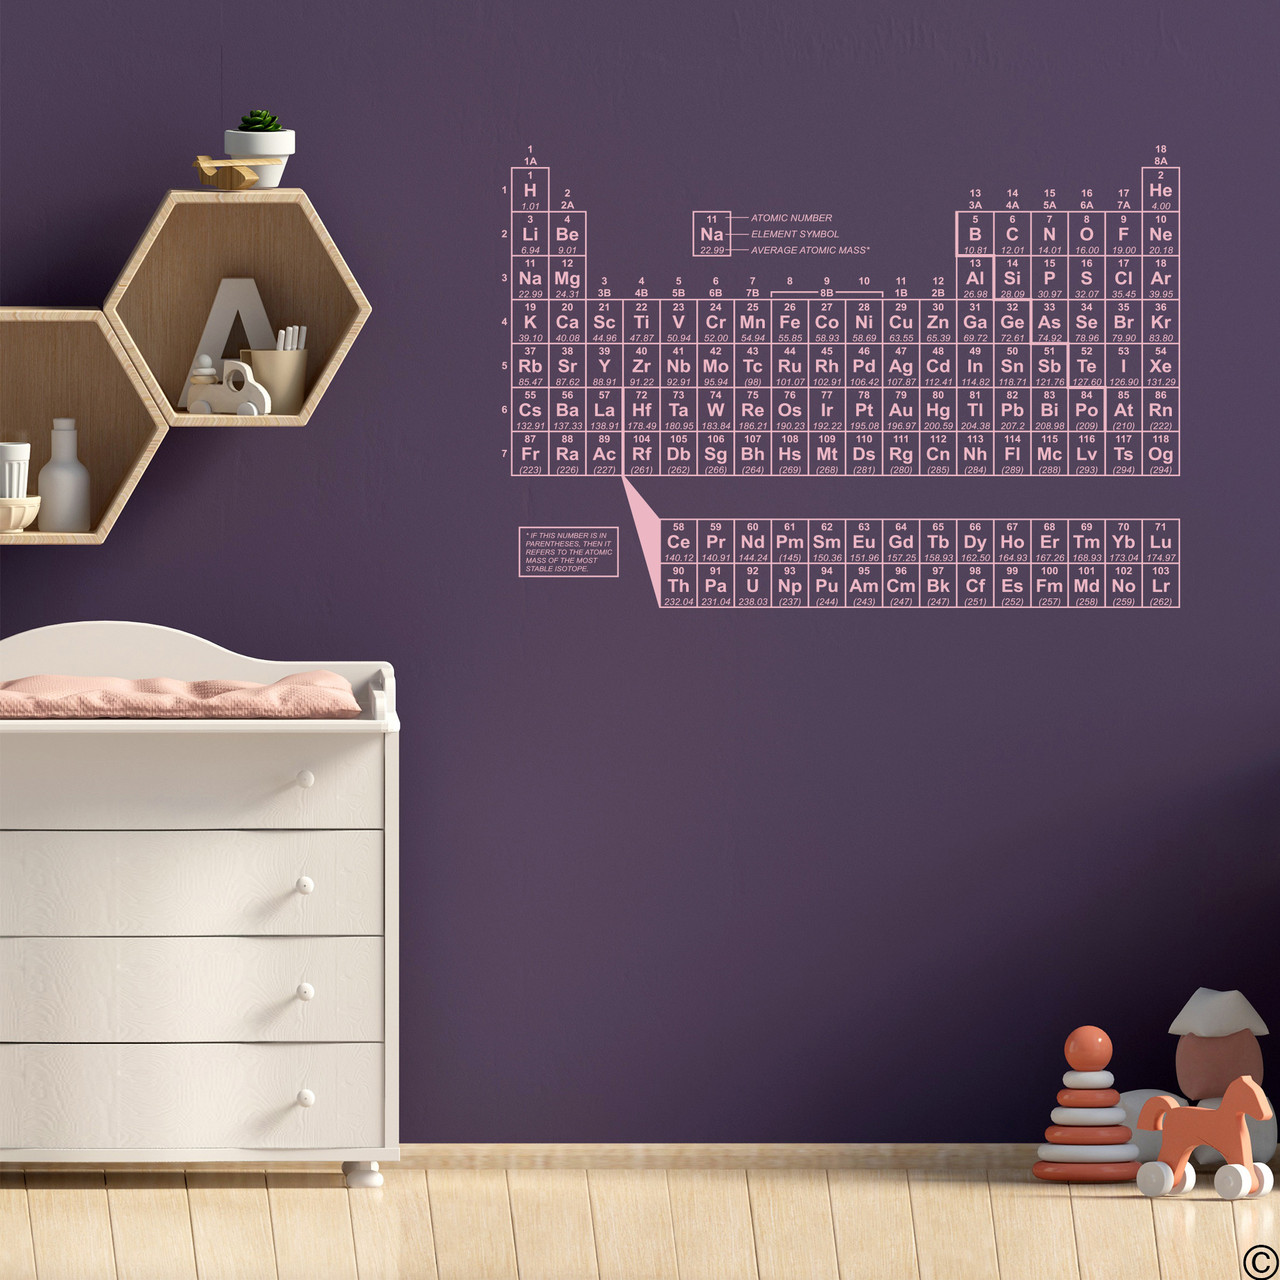 The advance periodic table wall decal for high school science and beyond, shown here on a kids room wall in carnation pink.